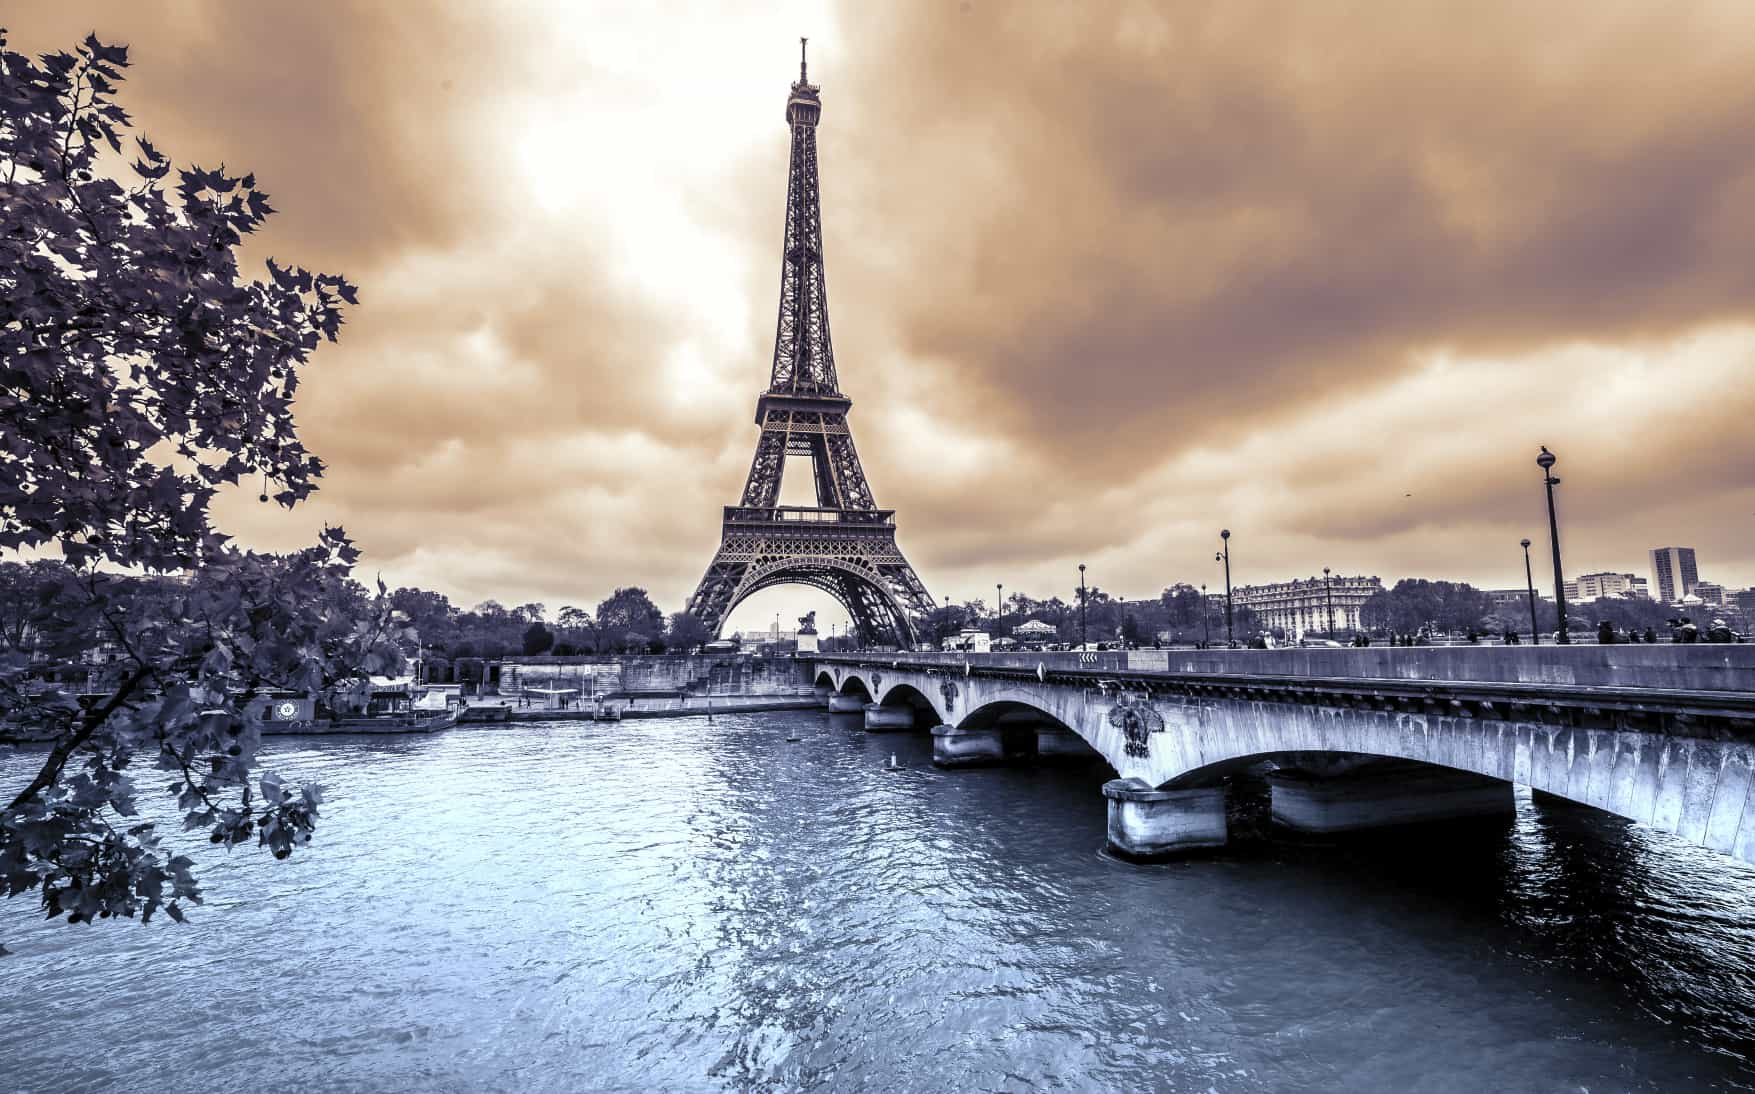 Eiffel Tower from Seine. Winter rainy day in Paris